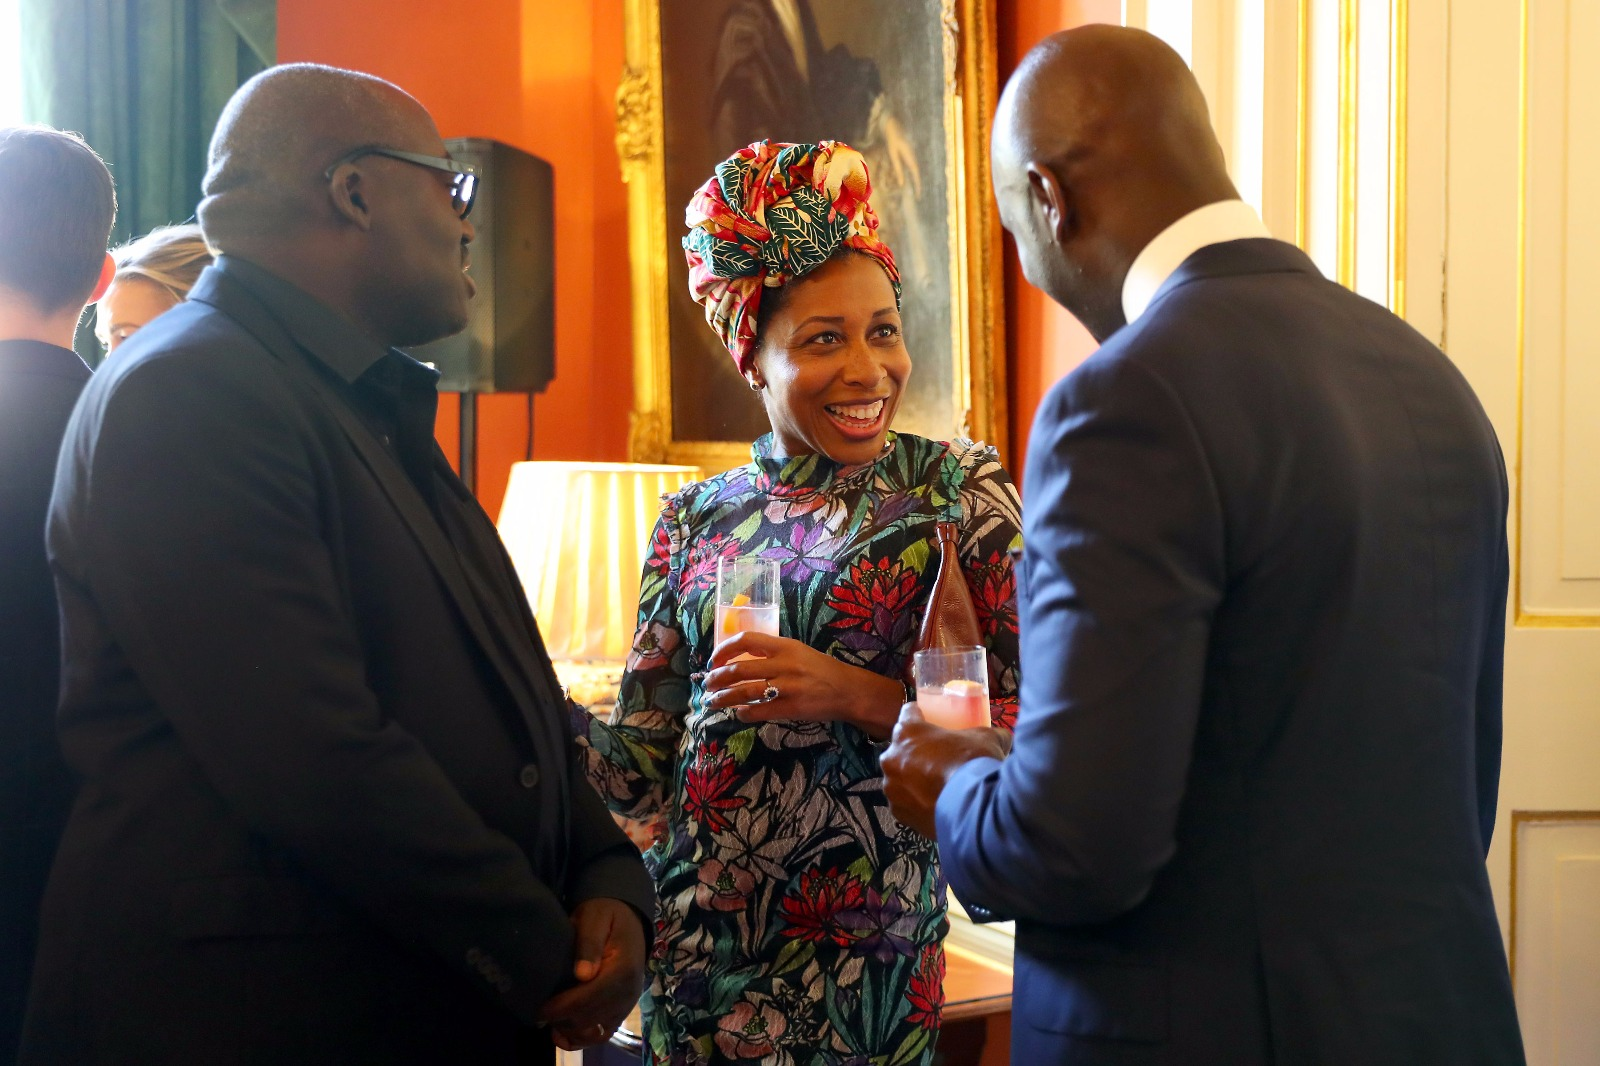 Downing Street London Fashion Week reception with Edward Enninful and guest (Sept18)